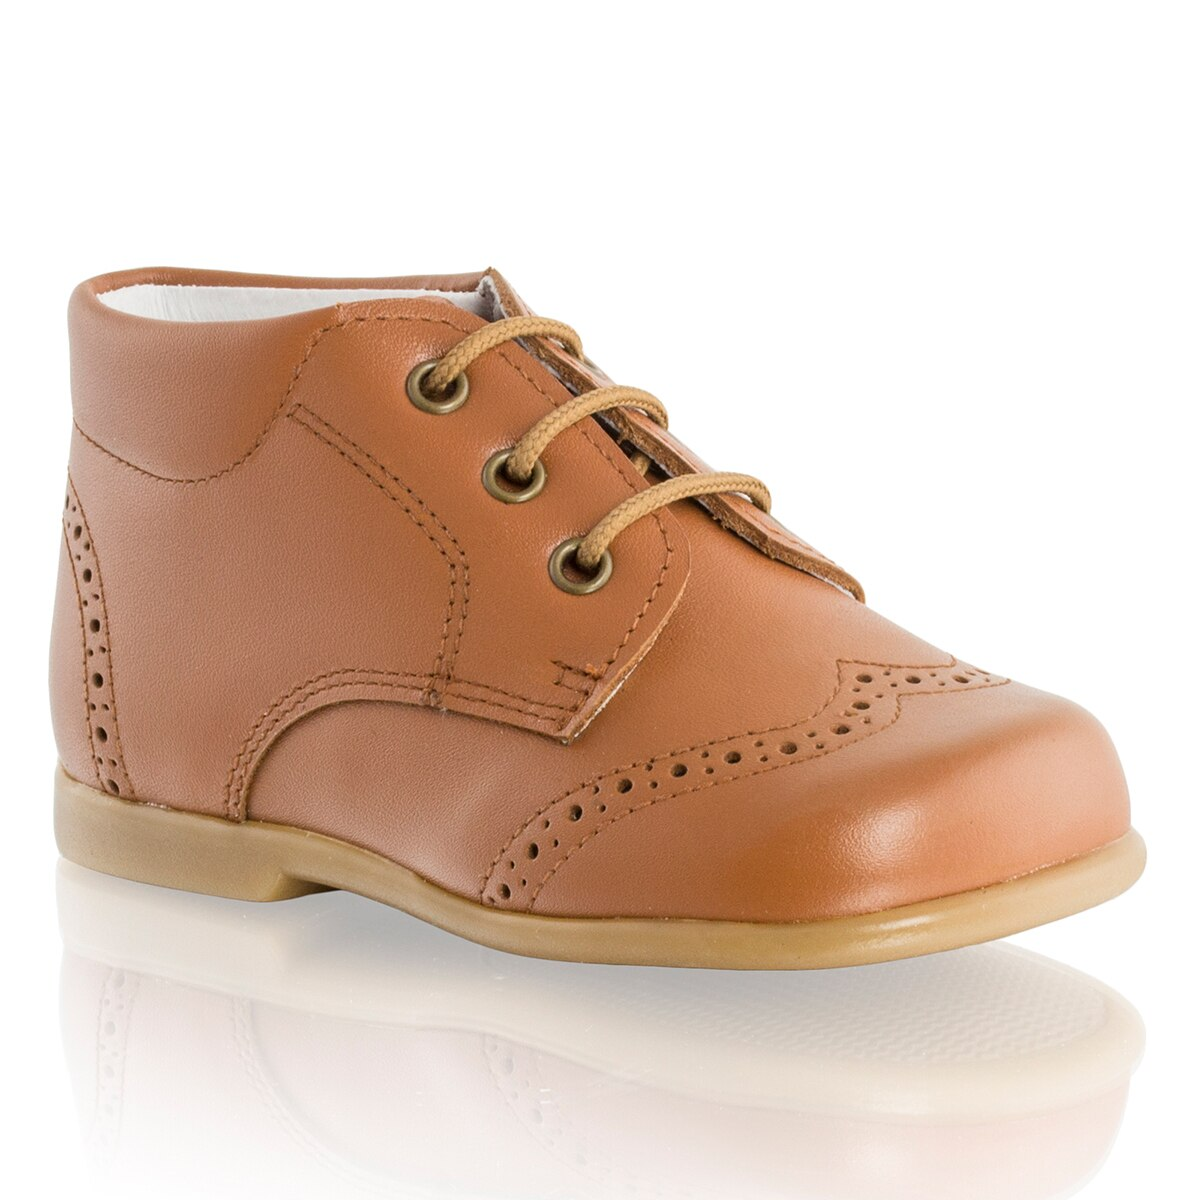 Russell and Bromley JAYDEN Lace-Up Brogued Boot